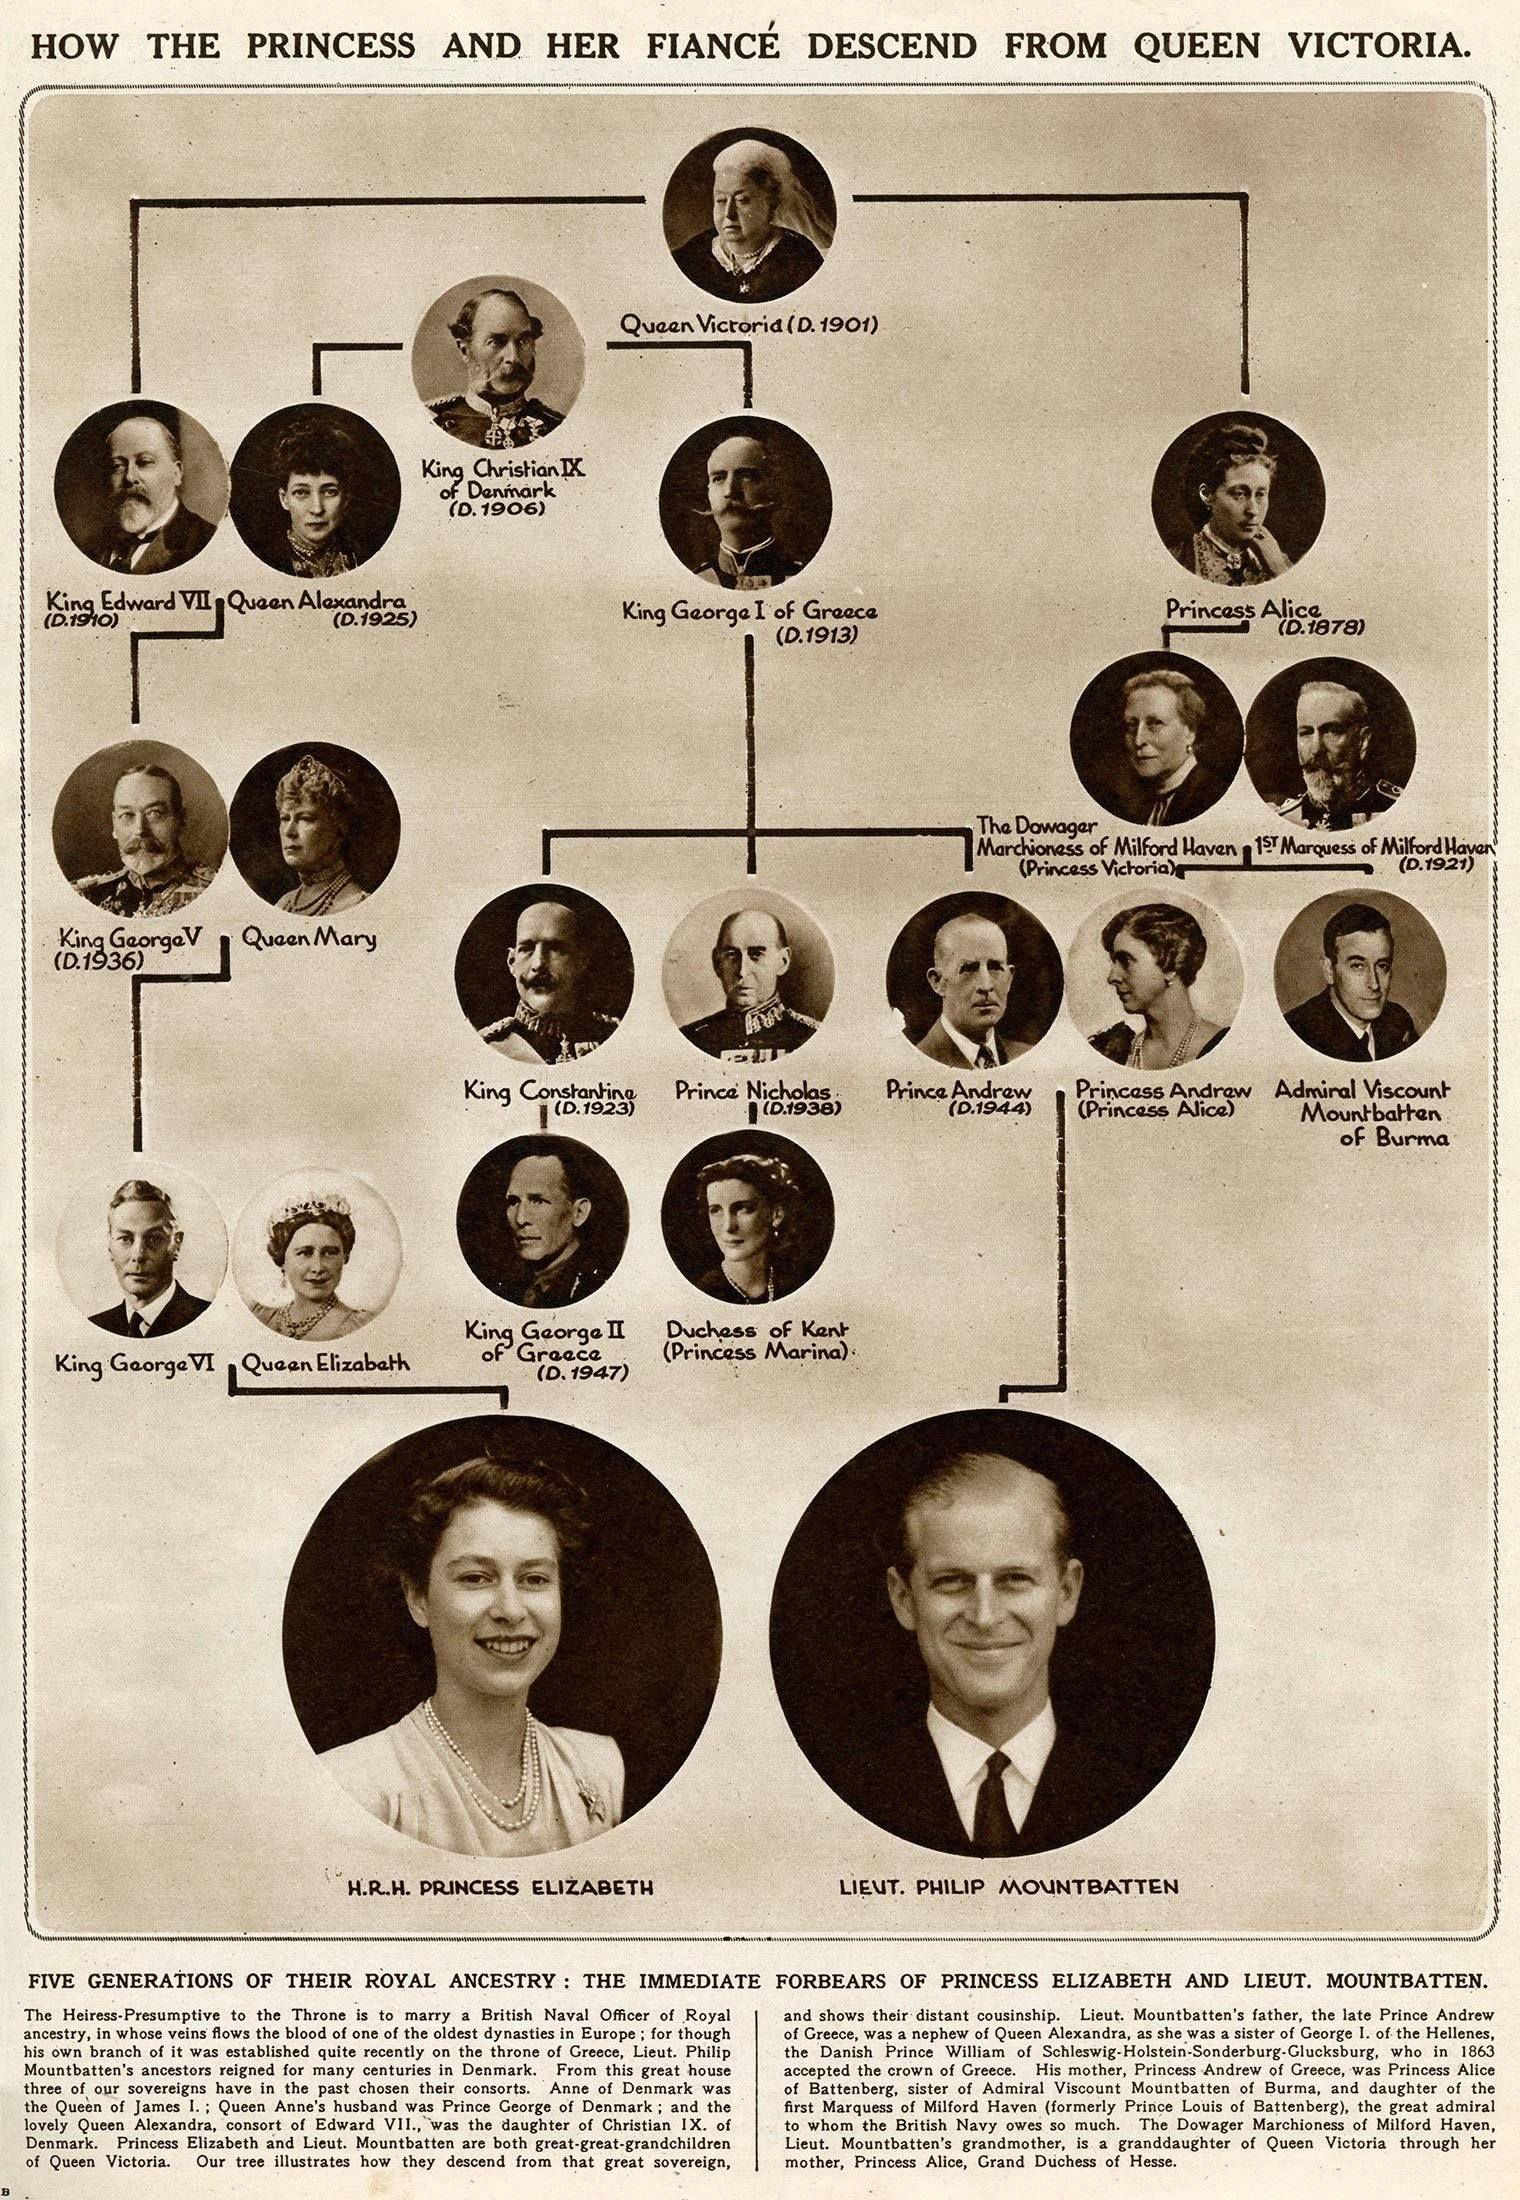 Queen Elizabeth II and Prince Philip (Part I): 3rd cousins